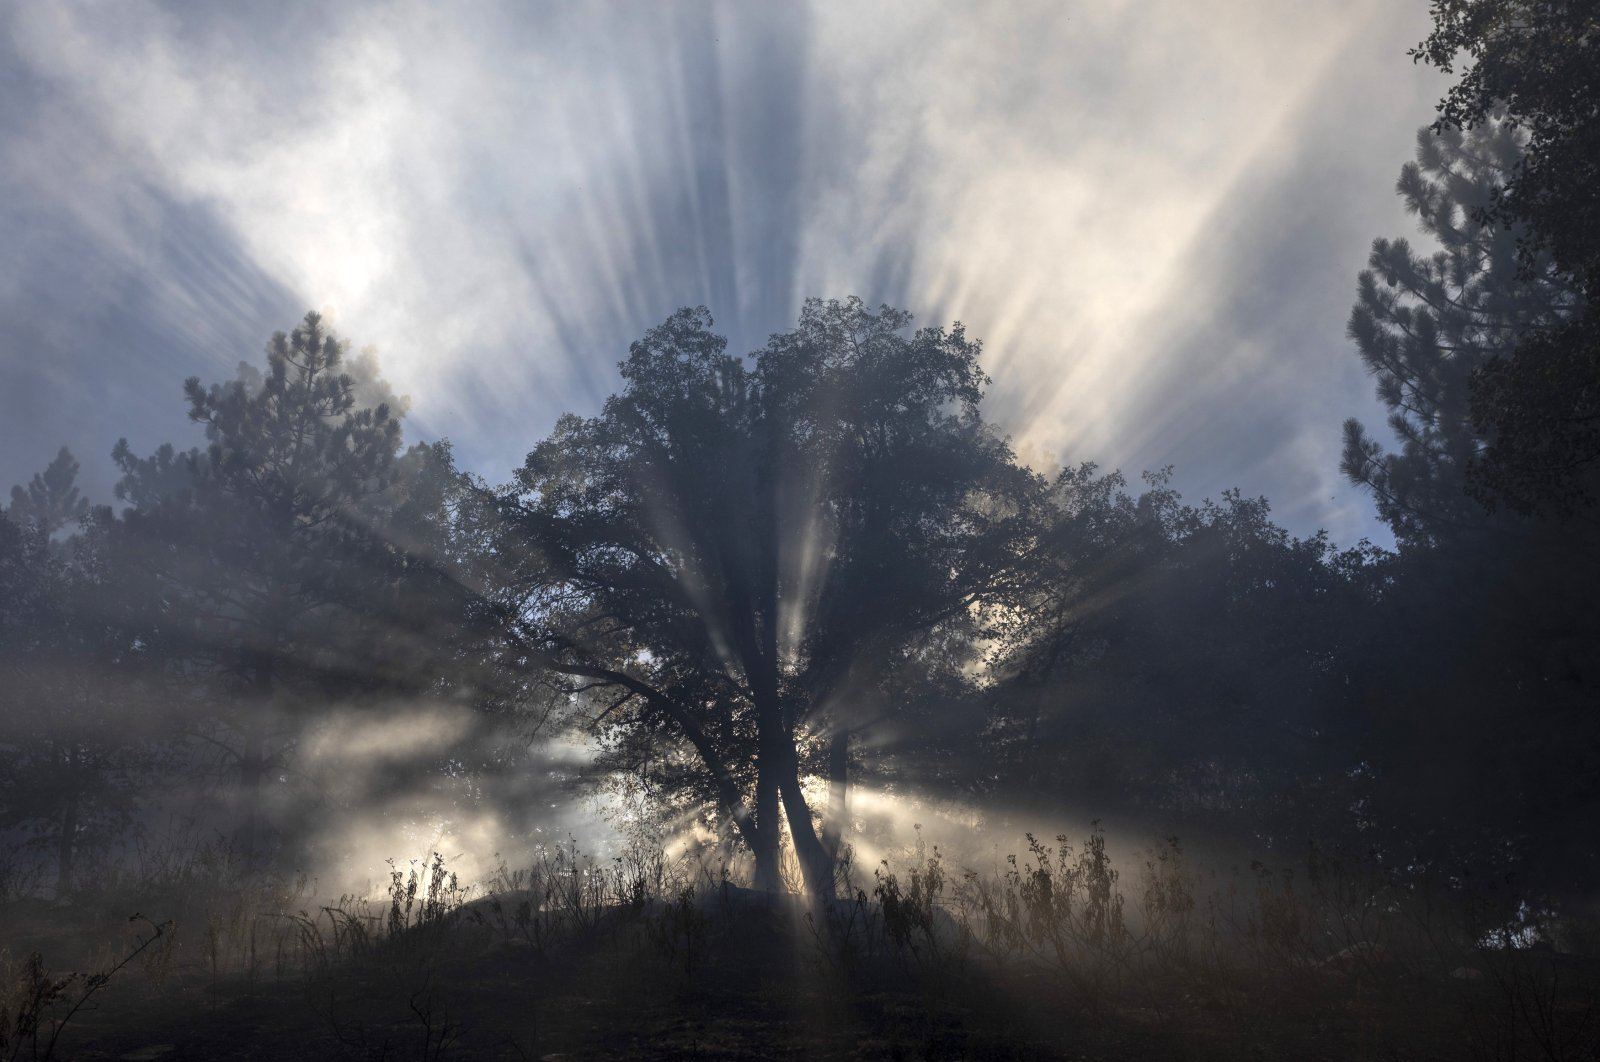 Sun rays filter through a smoky forest at the Apple Fire as an excessive heat warning continues, Cherry Valley, California, U.S., Aug. 1, 2020. (Photo by Getty Images)